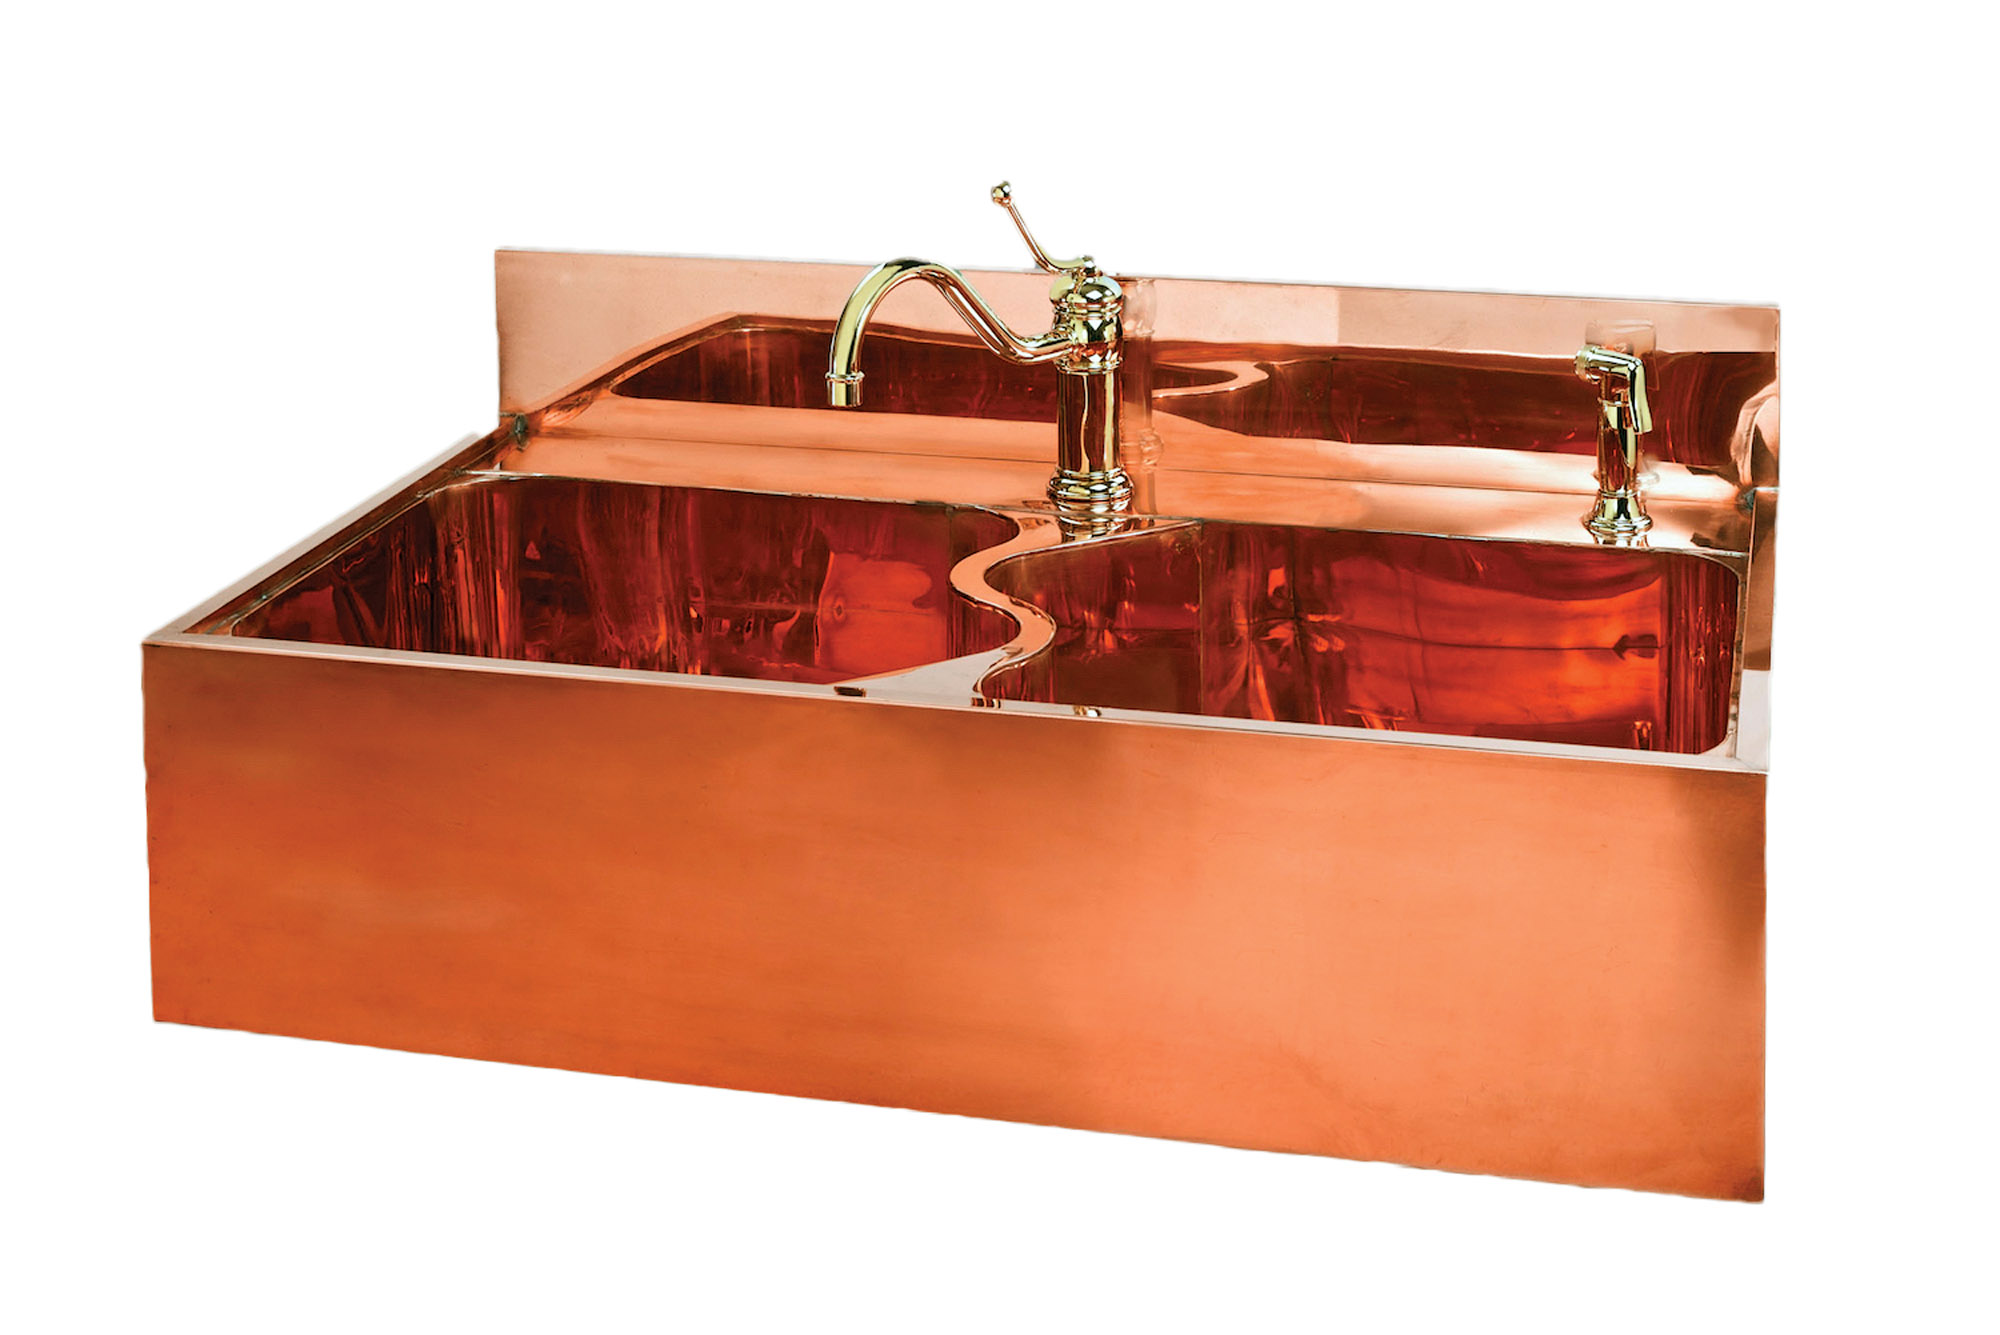 Copper sink by German Silver Sink Co.